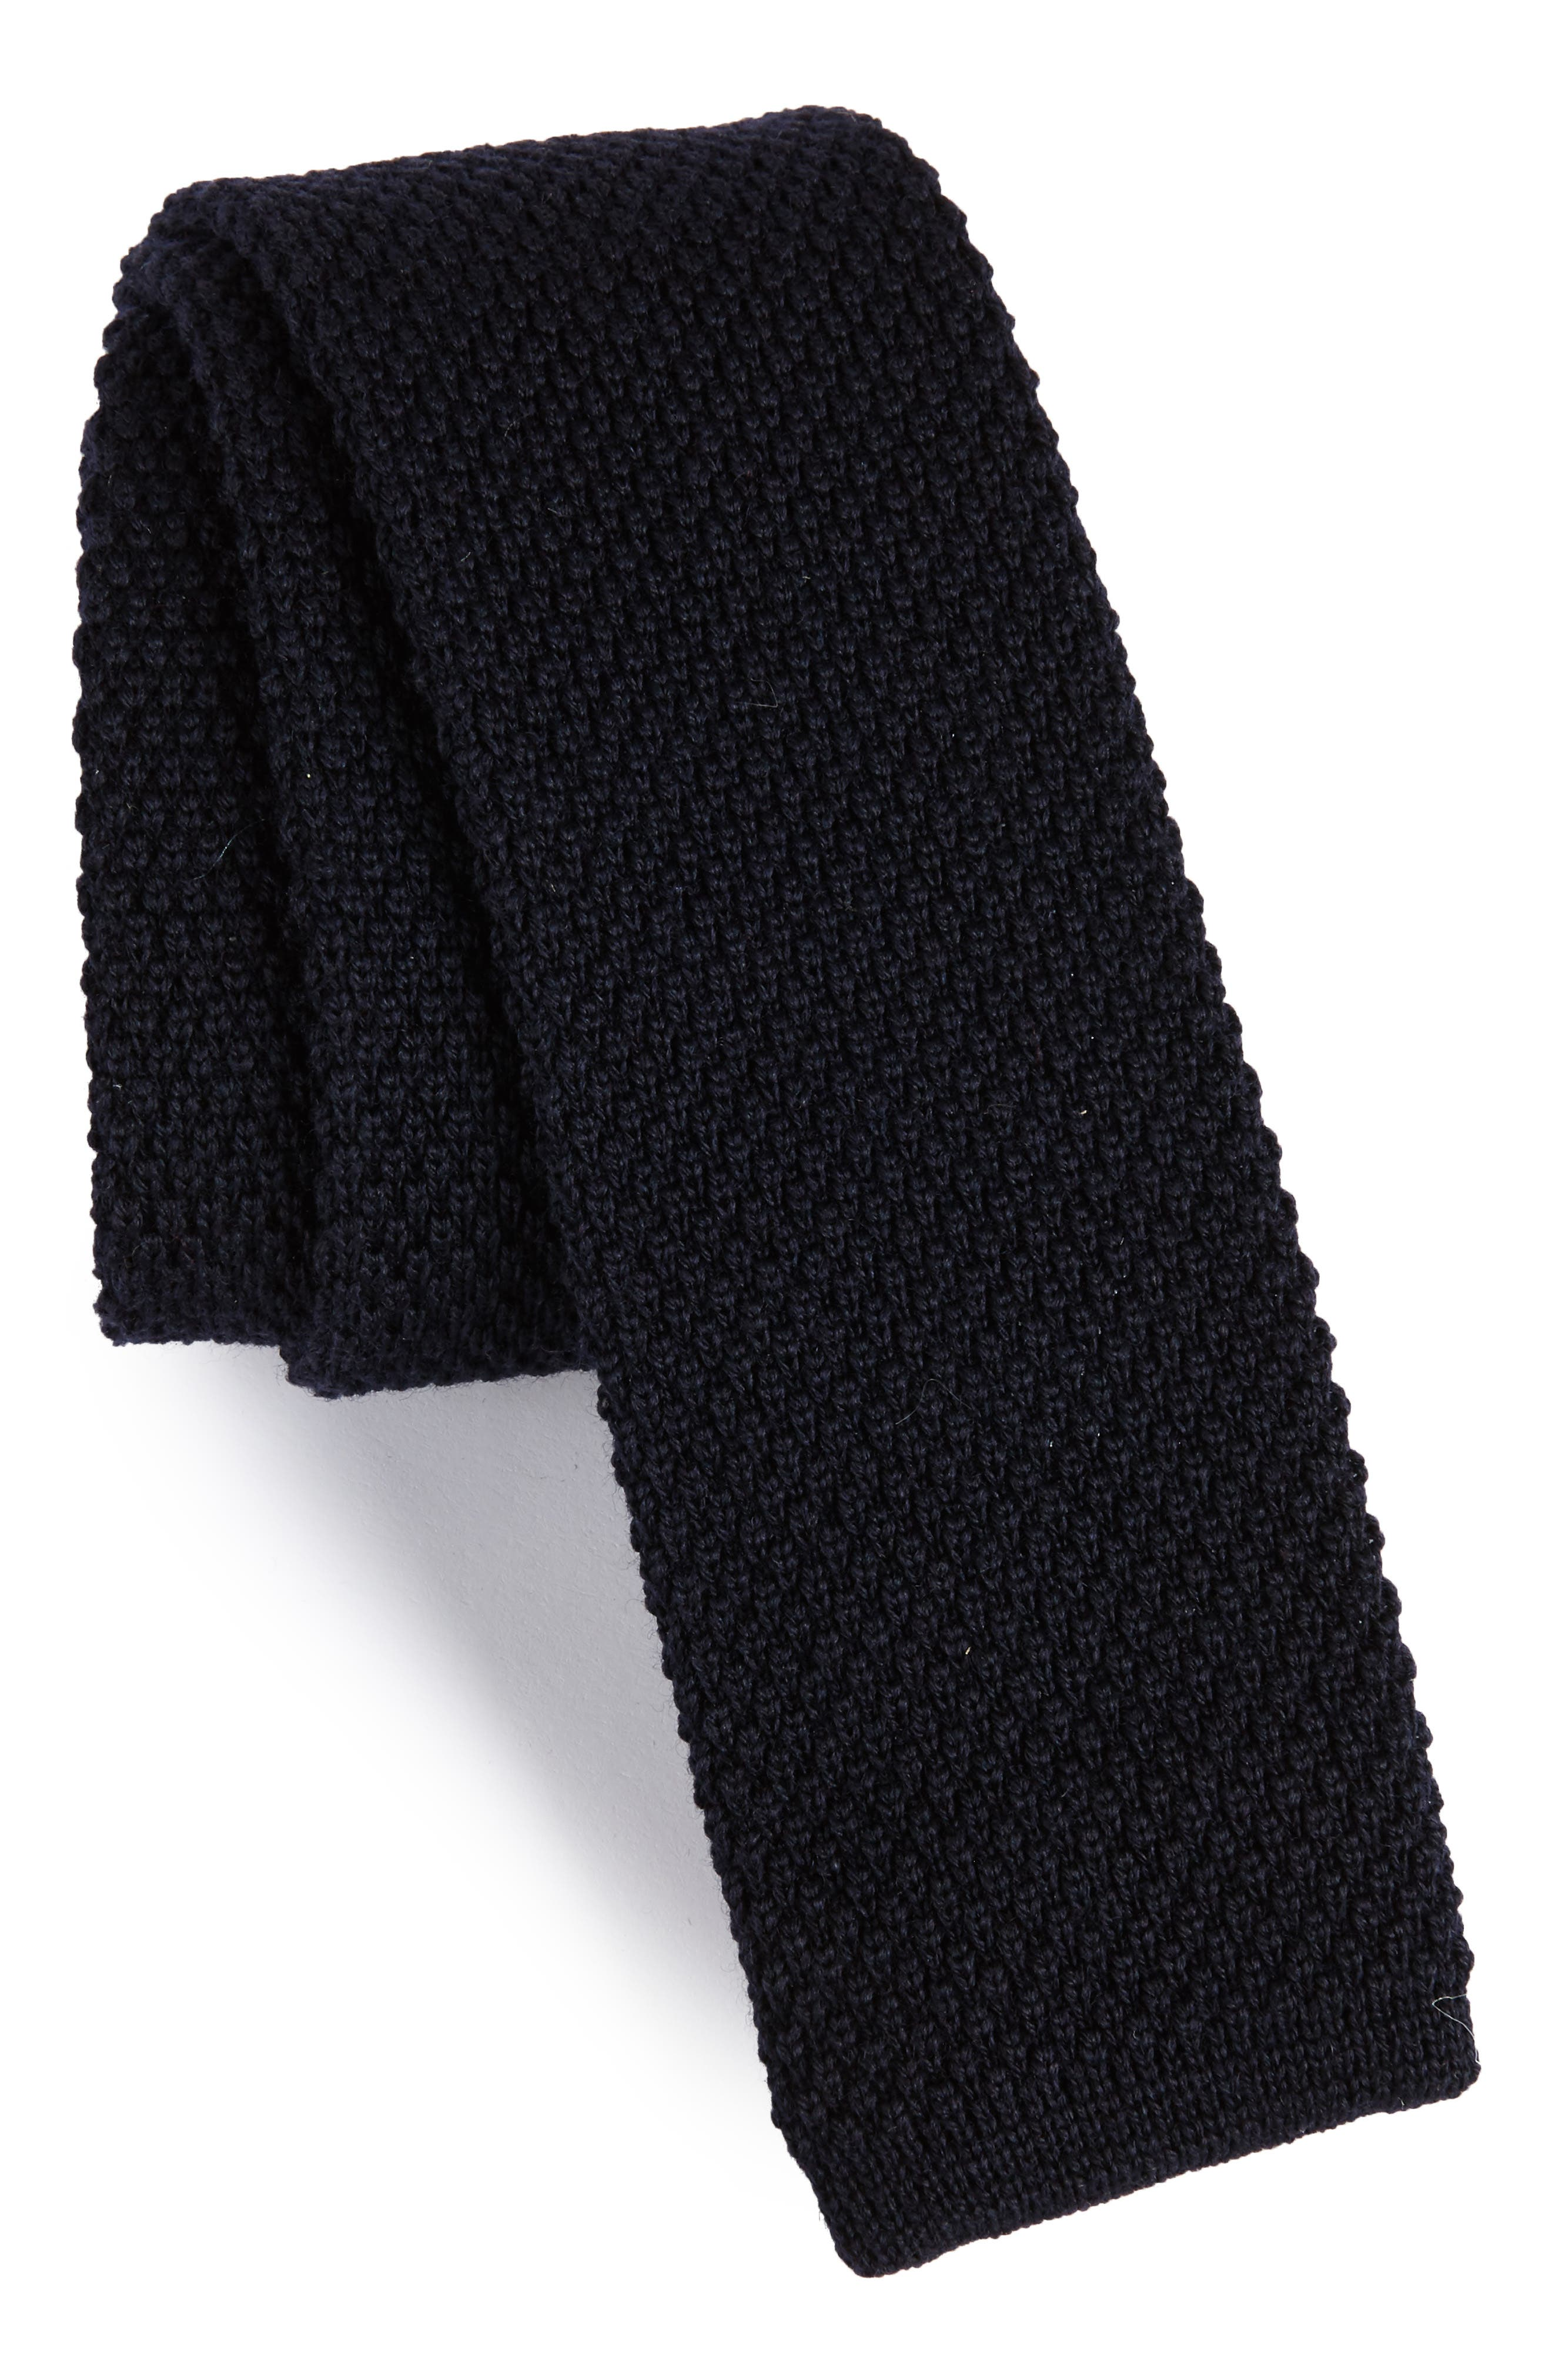 Solid Knit Wool Skinny Tie,                             Main thumbnail 3, color,